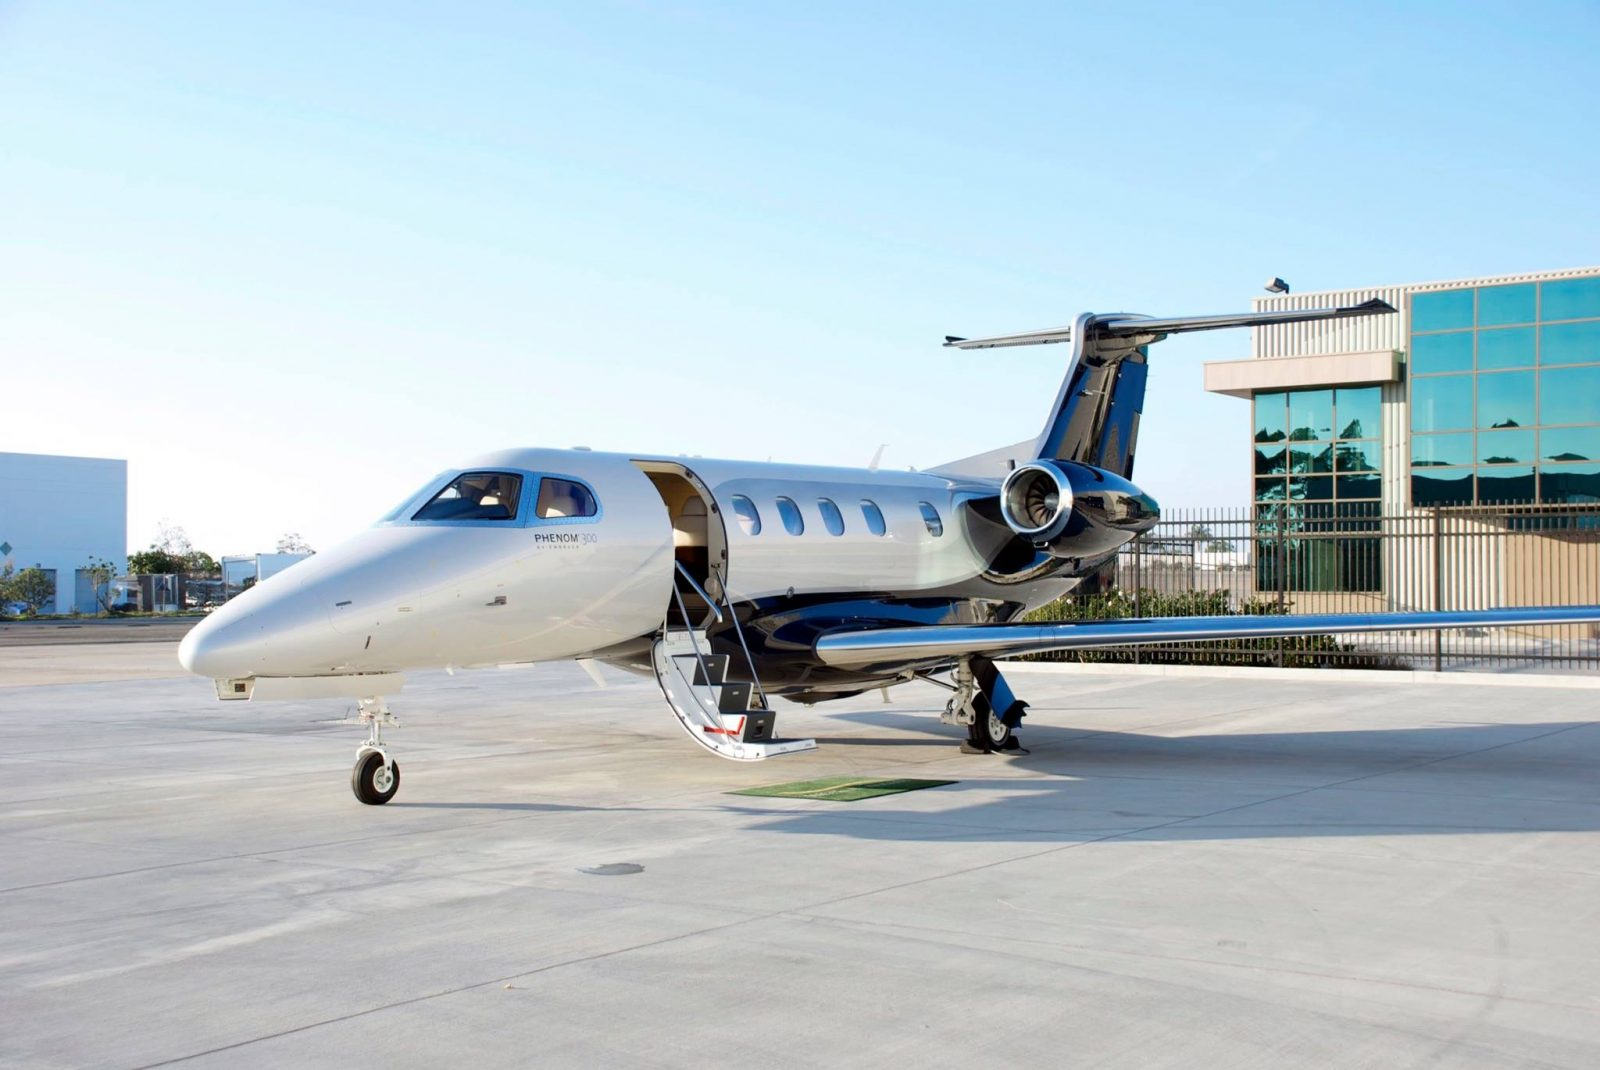 Bien connu Private Jets - Deluxe-EscapesDeluxe-Escapes ZR69